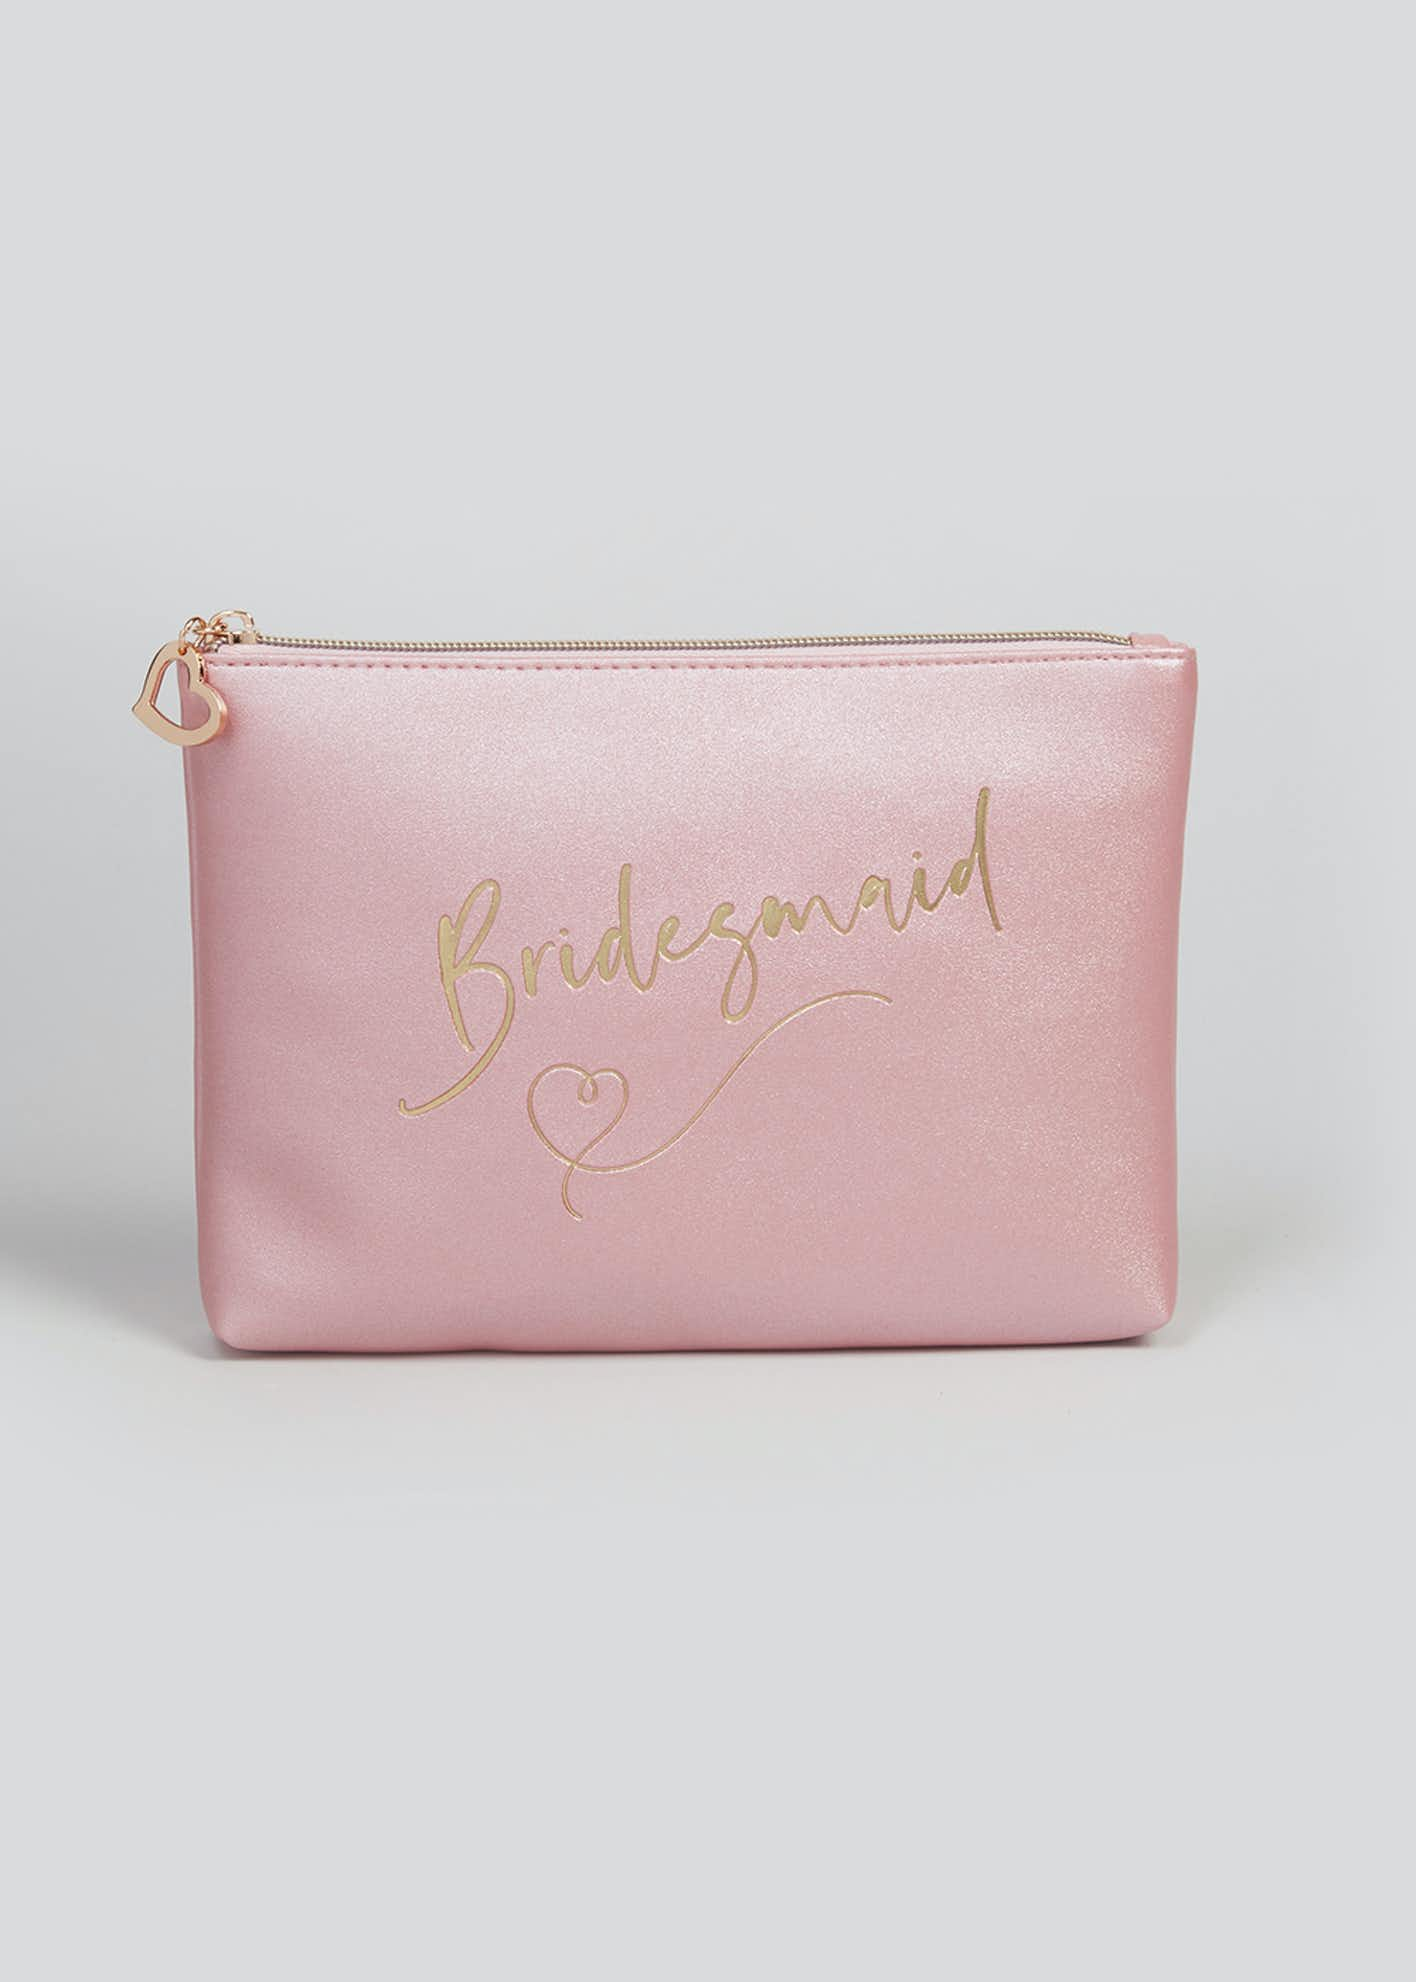 Bridesmaid Makeup Bag (23.5cm x 17cm x 3.5cm)